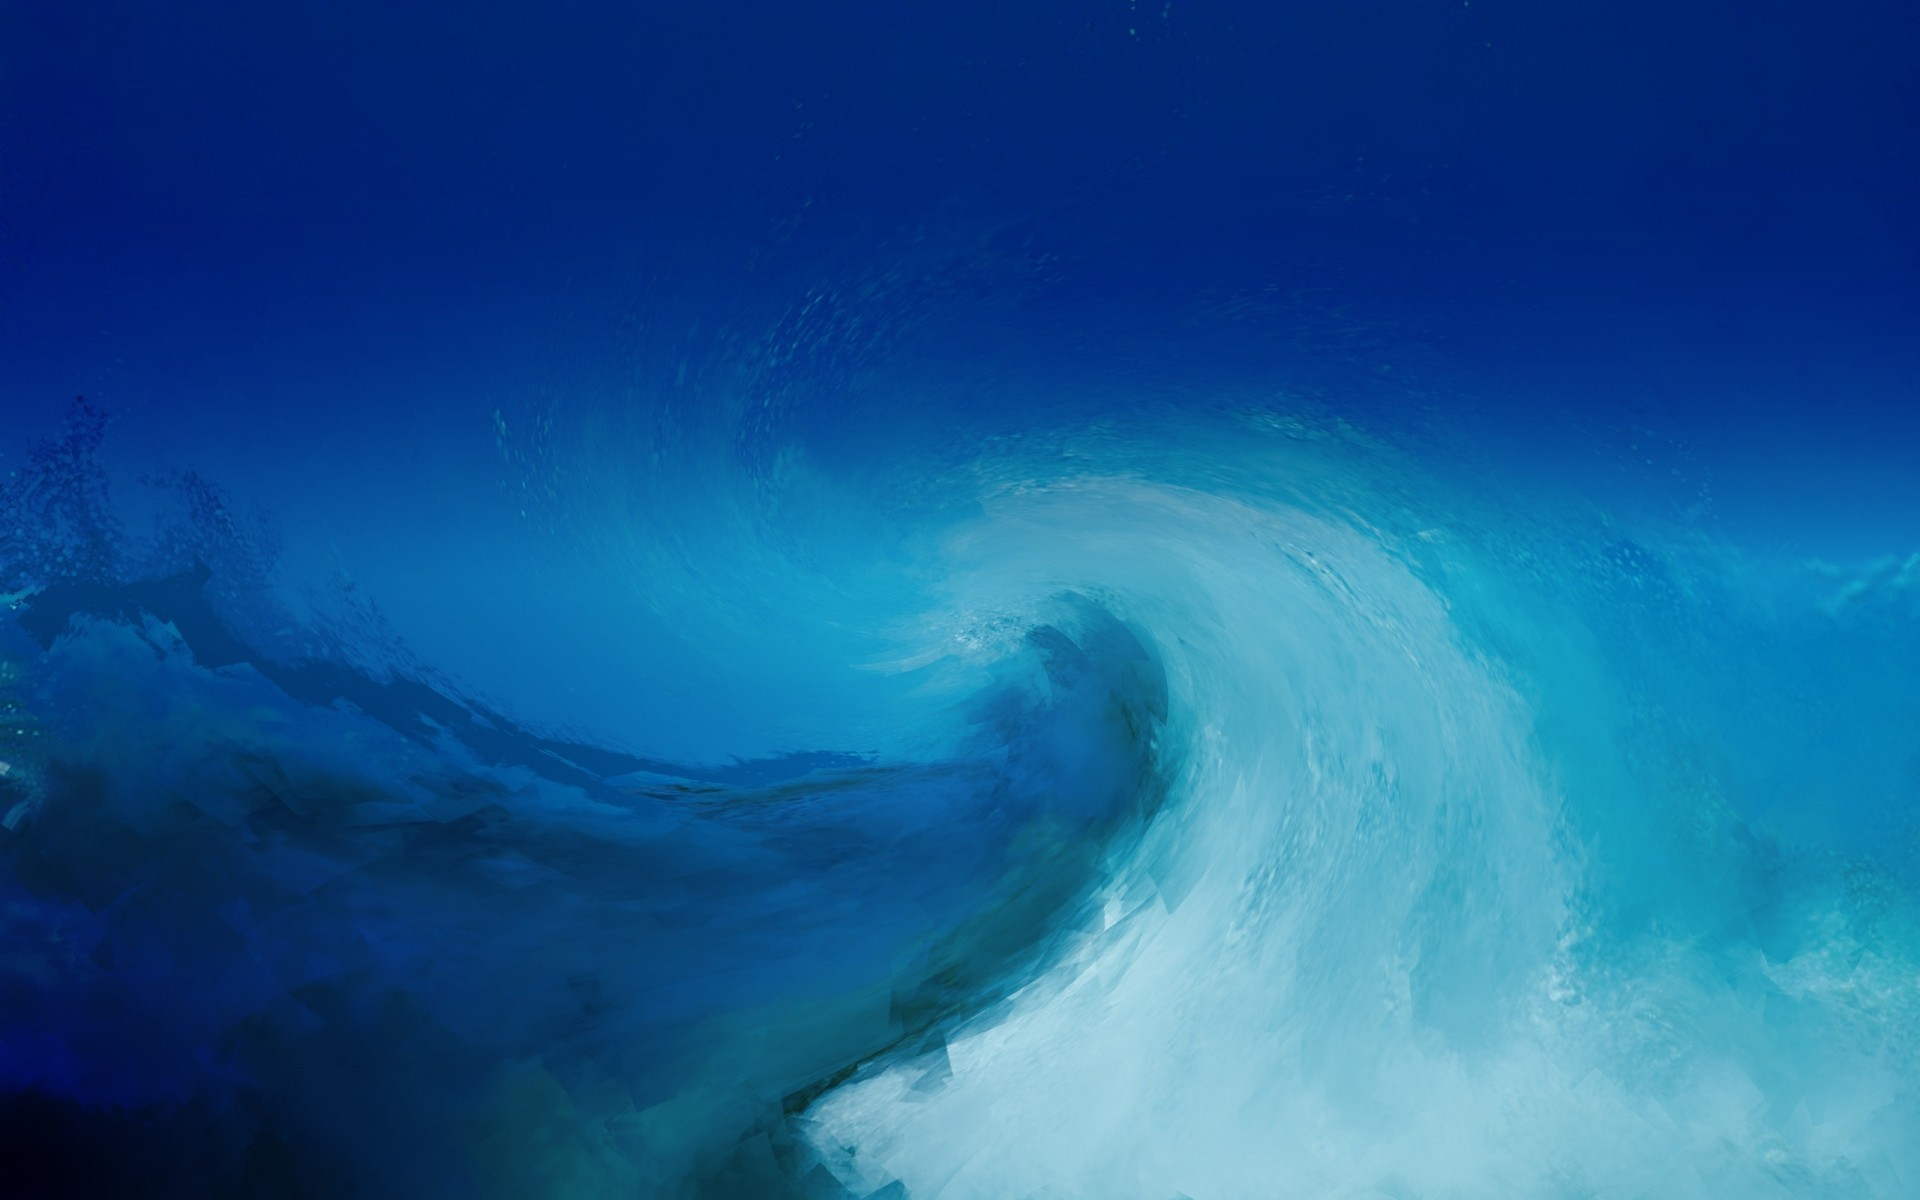 1920x1200 Wave painting texture blue light blue white ocean sea water storm wallpaper  |  | 56196 | WallpaperUP